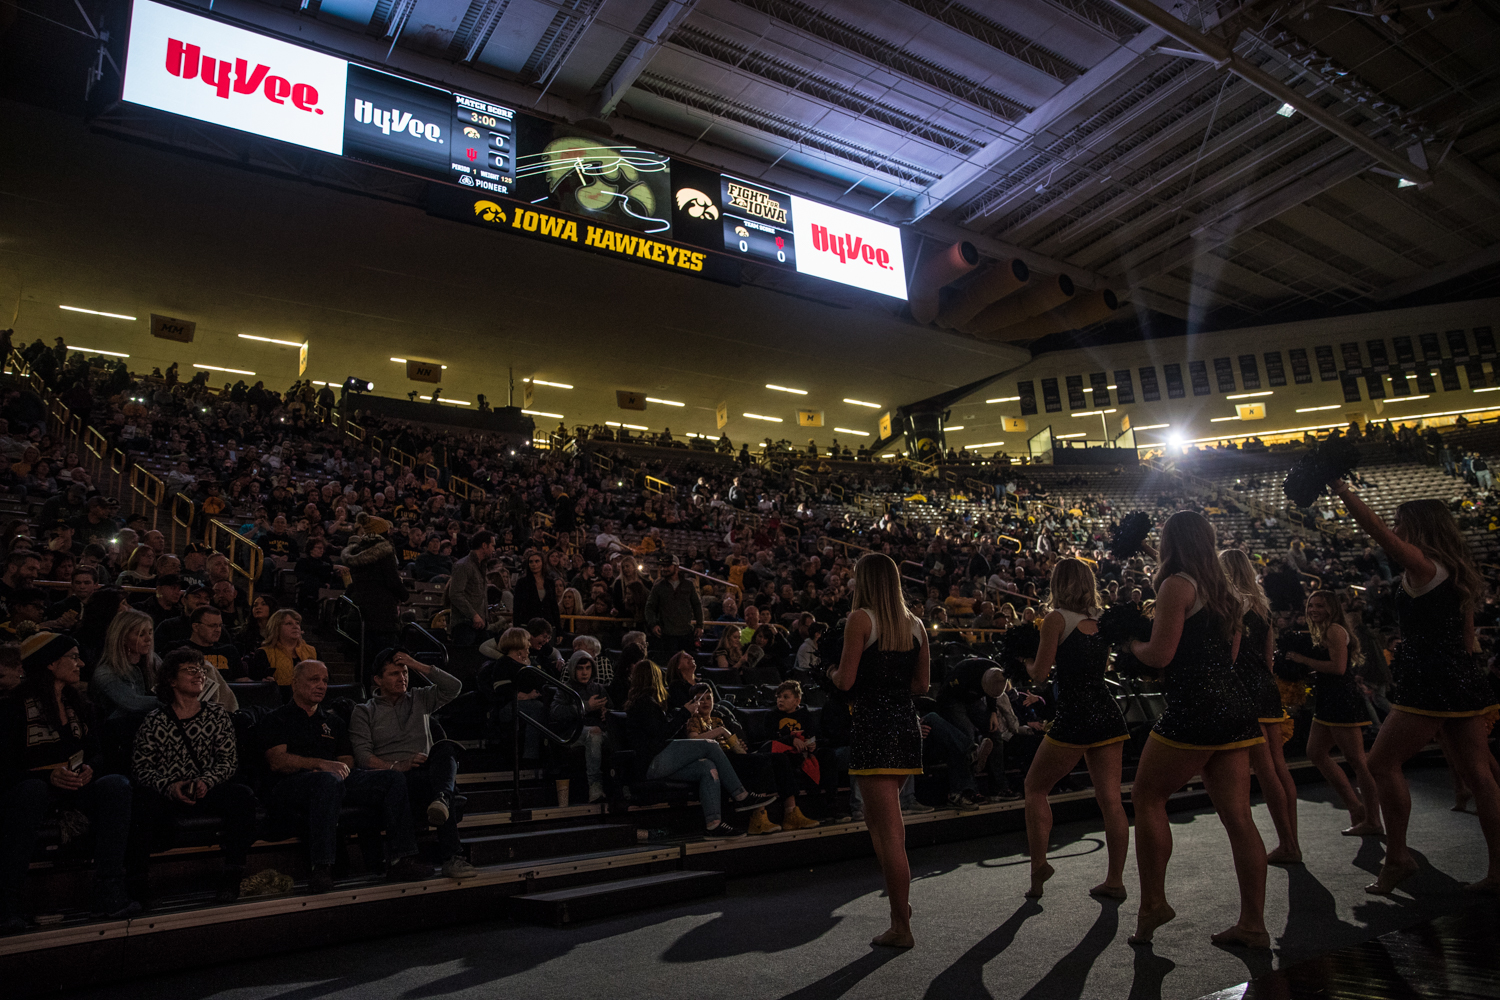 Iowa+spirit+sqads+pump+up+the+crowd+during+a+wrestling+match+between+Iowa+and+Indiana+at+Carver-Hawkeye+Arena+on+Friday%2C+February+15%2C+2019.+The+Hawkeyes%2C+celebrating+senior+night%2C+defeated+the+Hoosiers+37-9.